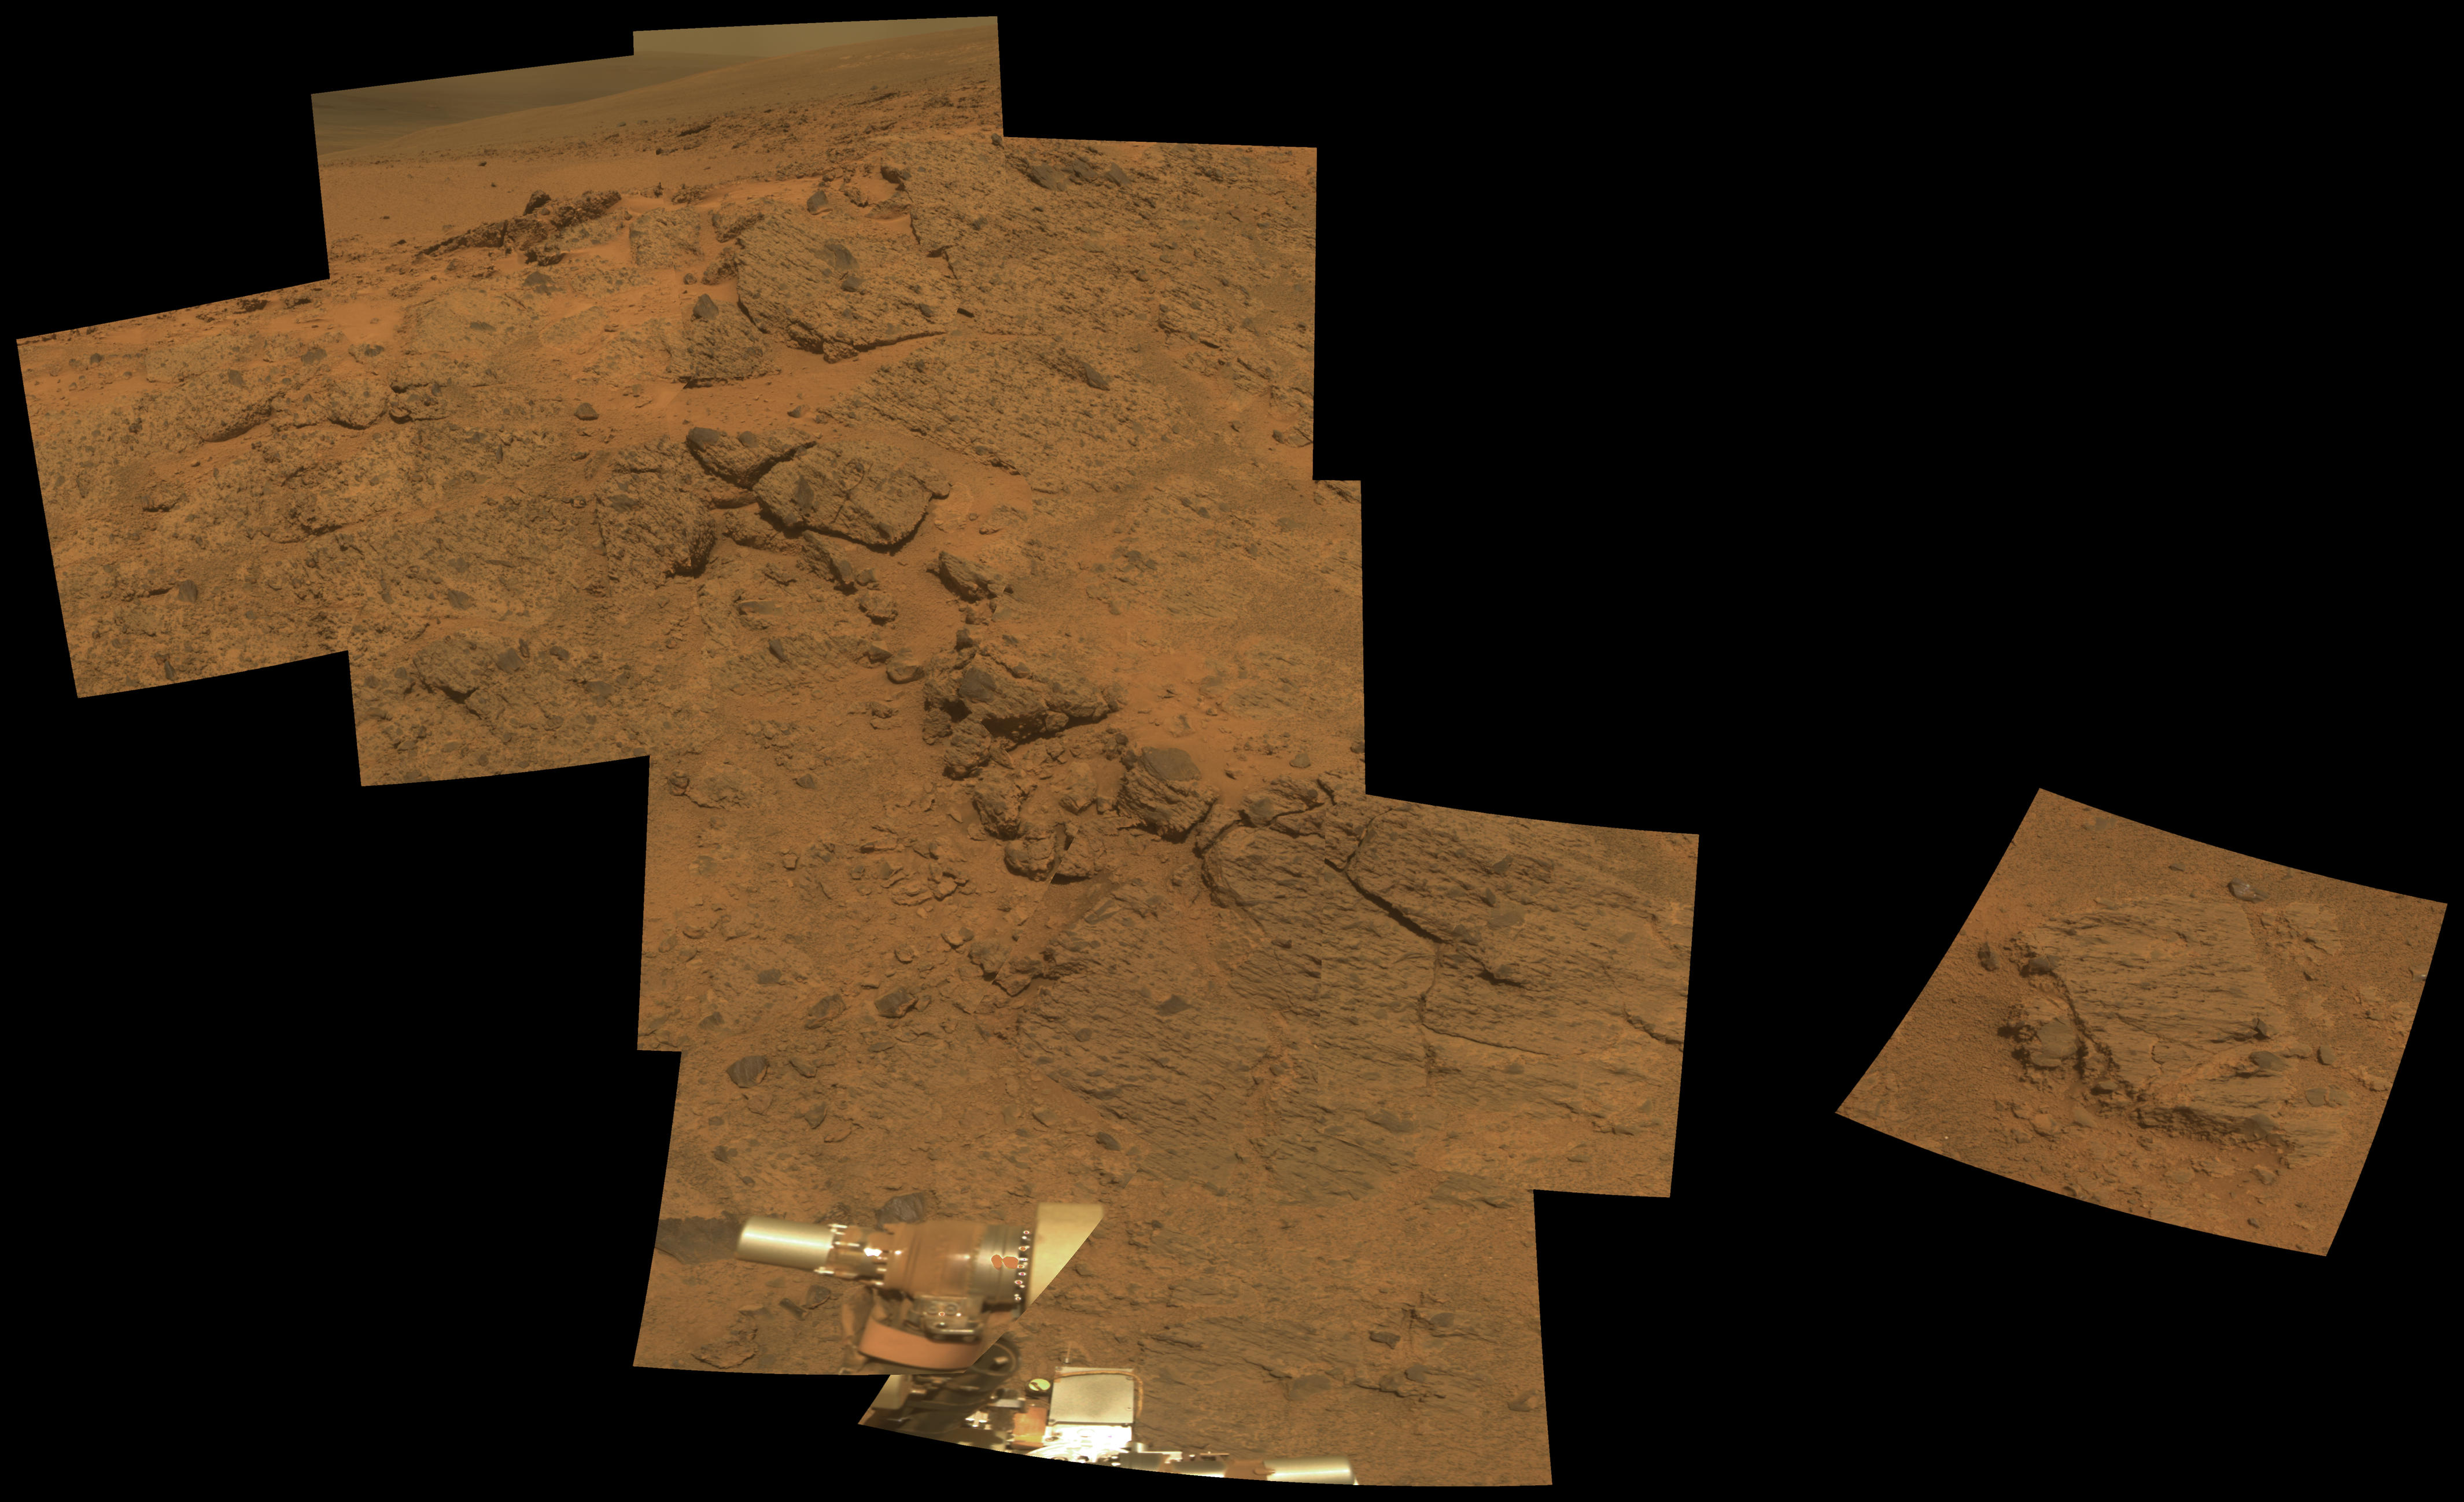 "NASA's Mars Exploration Rover Opportunity observed this outcrop on the ""Murray Ridge"" portion of the rim of Endeavour Crater as the rover approached the 10th anniversary of its landing on Mars."